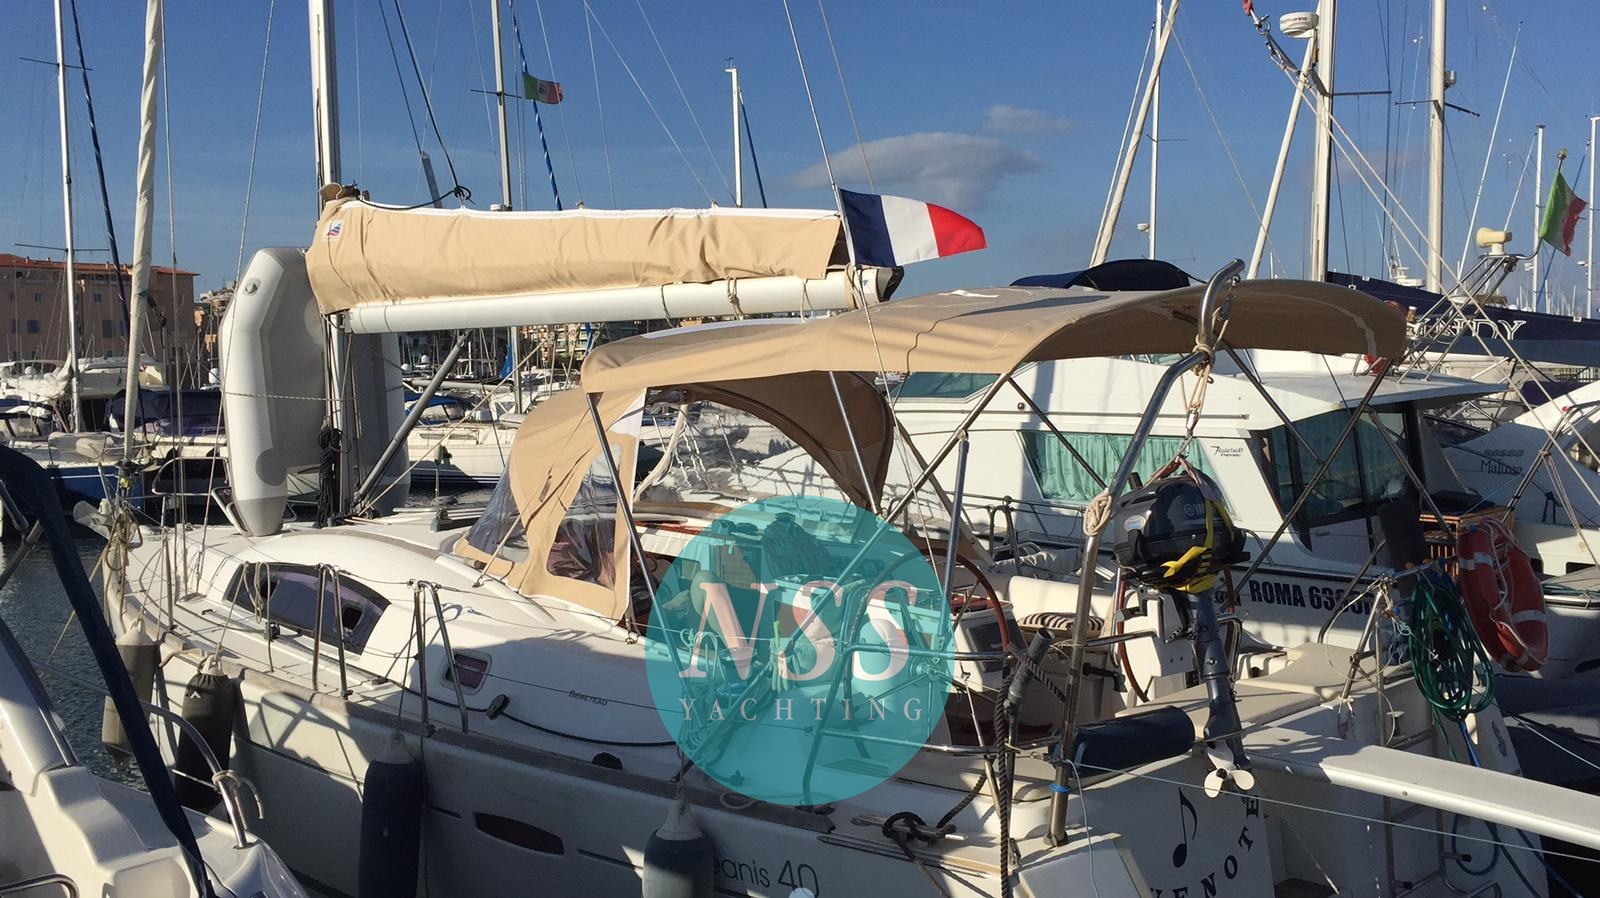 Beneteau Oceanis 40, preowned sailboat for sale in Lazio (Italy)